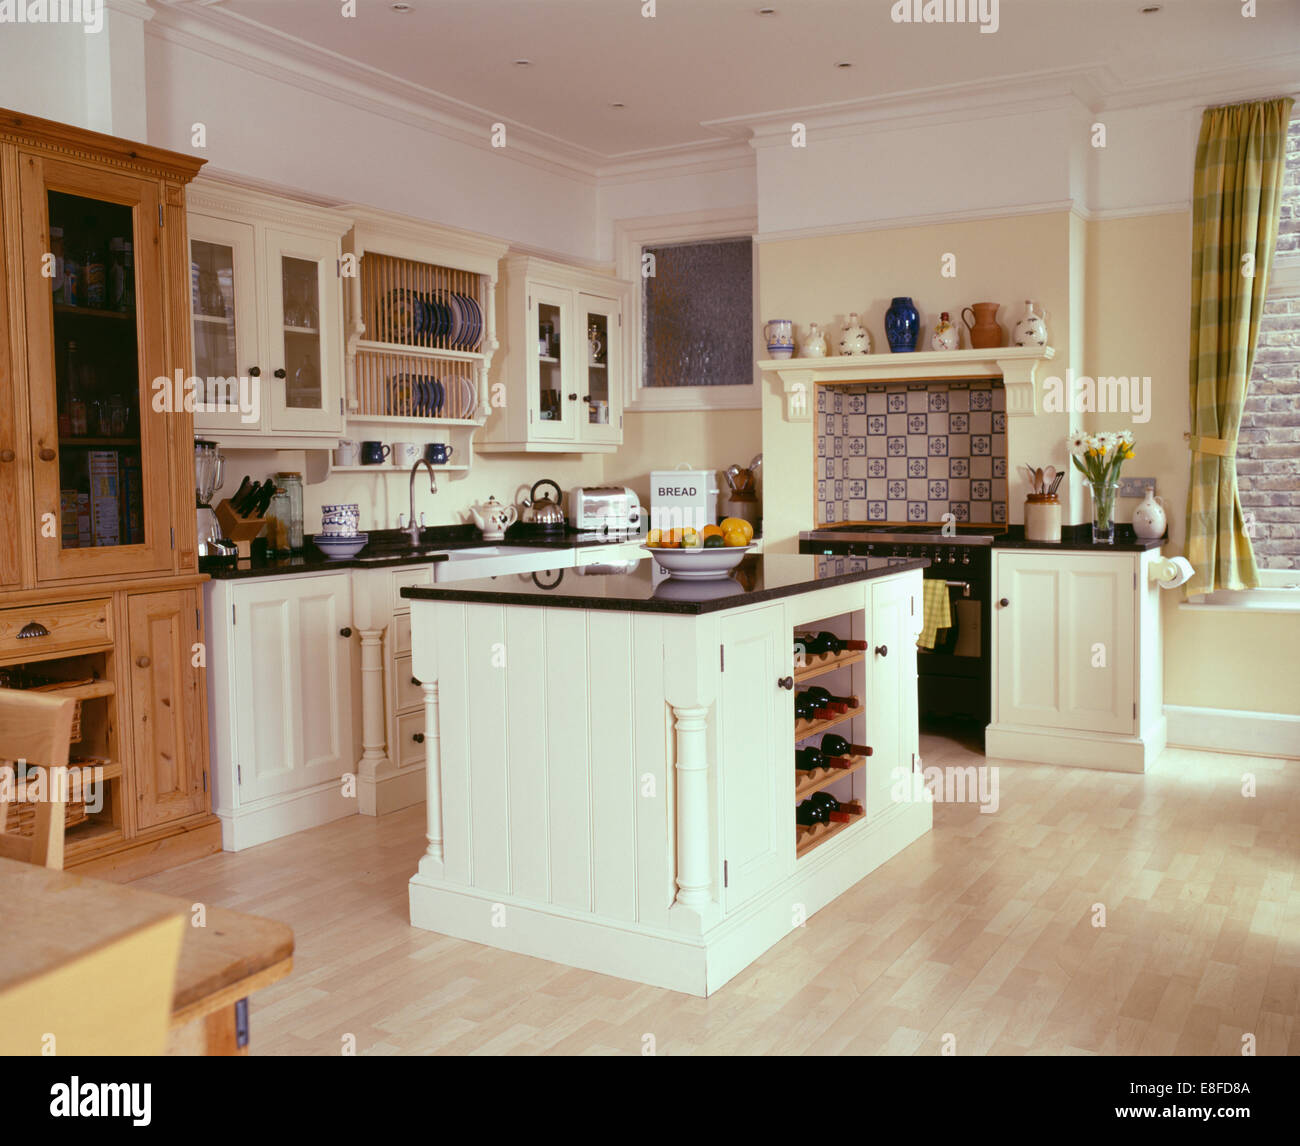 Island Units For Kitchens: Granite-topped Island Unit In Cream Townhouse Kitchen With